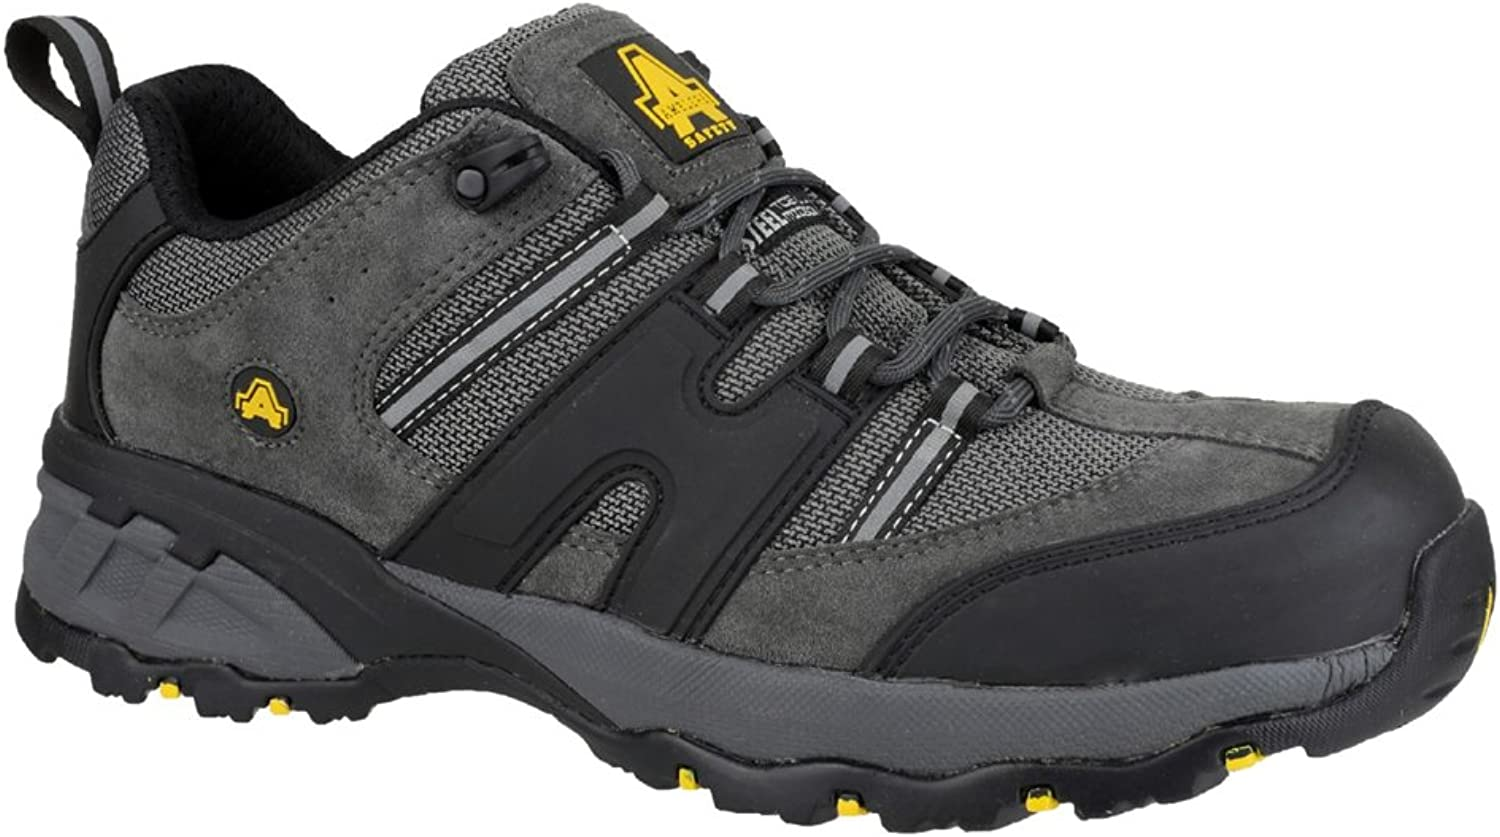 Mens Amblers Black Grey Laced Safety Toe Cap Work shoes Sizes 6 7 8 9 10 11 12